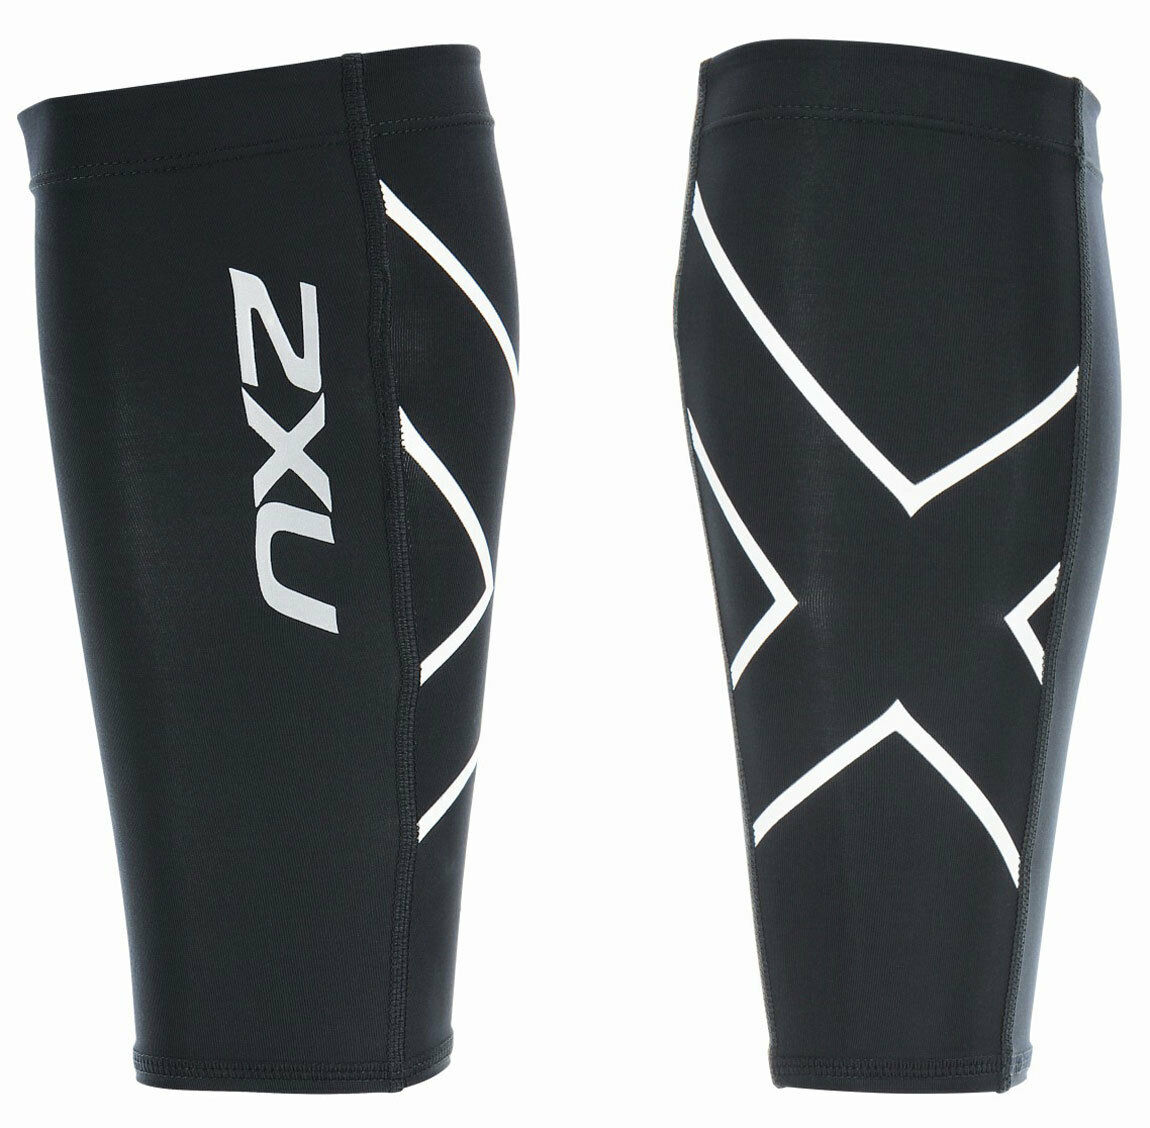 2xu compression  Calf guards unisex negro blancoo ua1987b  Vuelta de 10 dias